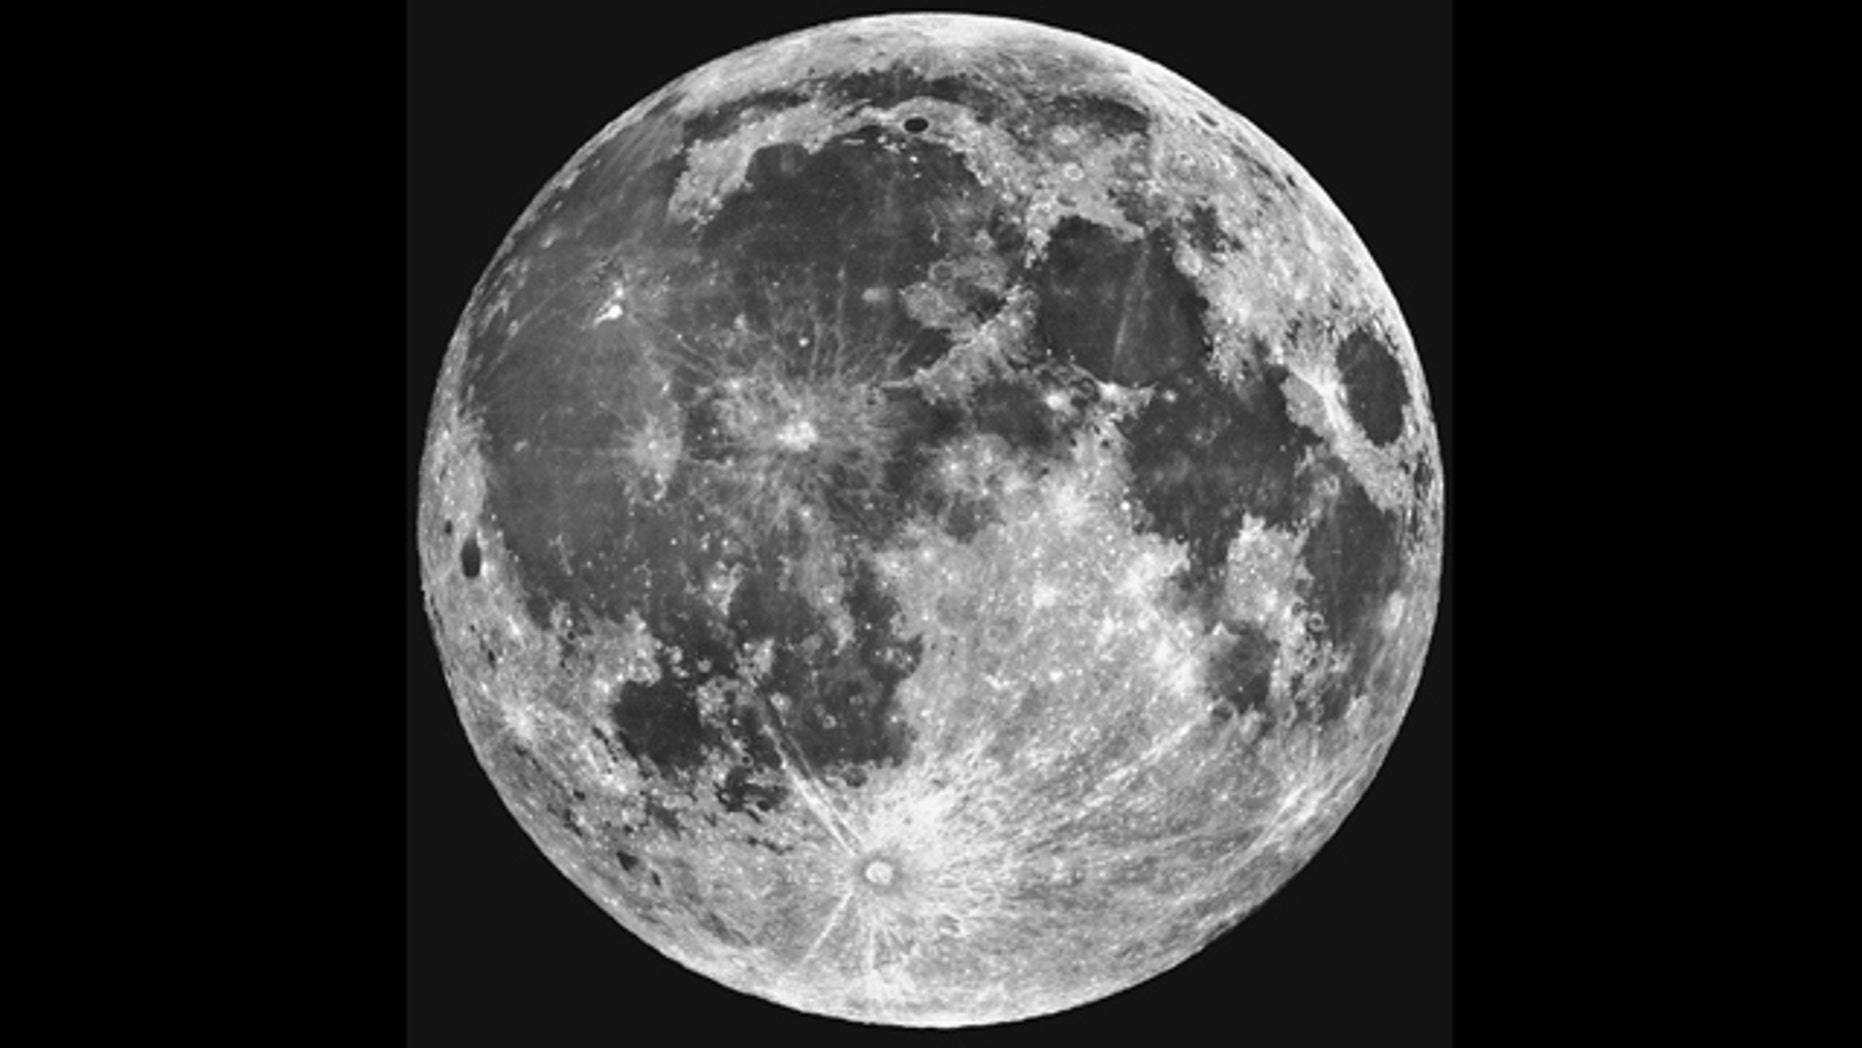 Tonight's full moon, also known as the wolf moon, will be the biggest and brightest of 2010.